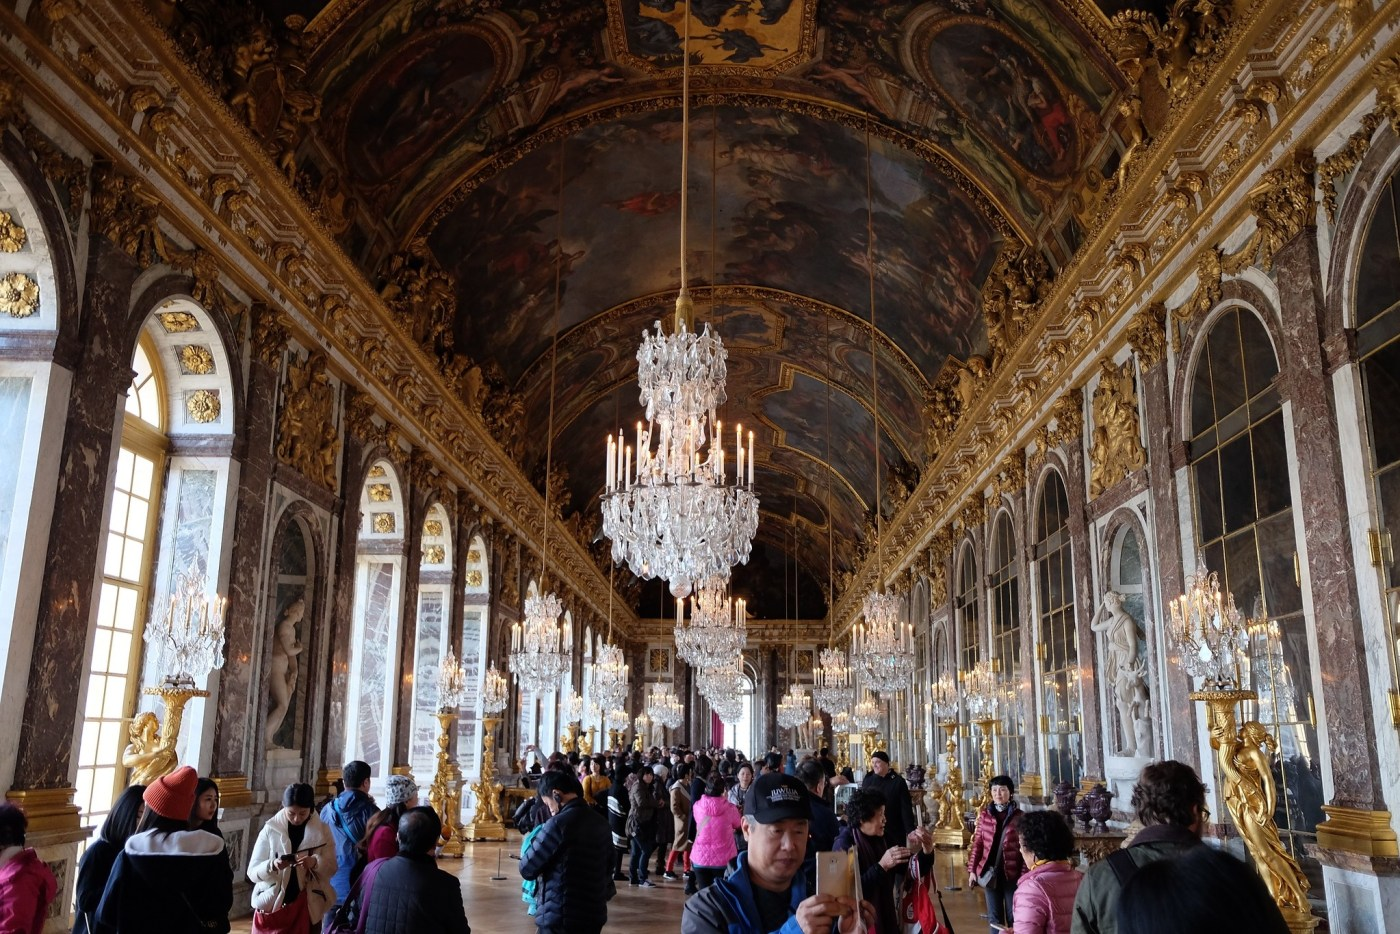 Hall of Mirrors in The Grand Gallery at Versailles